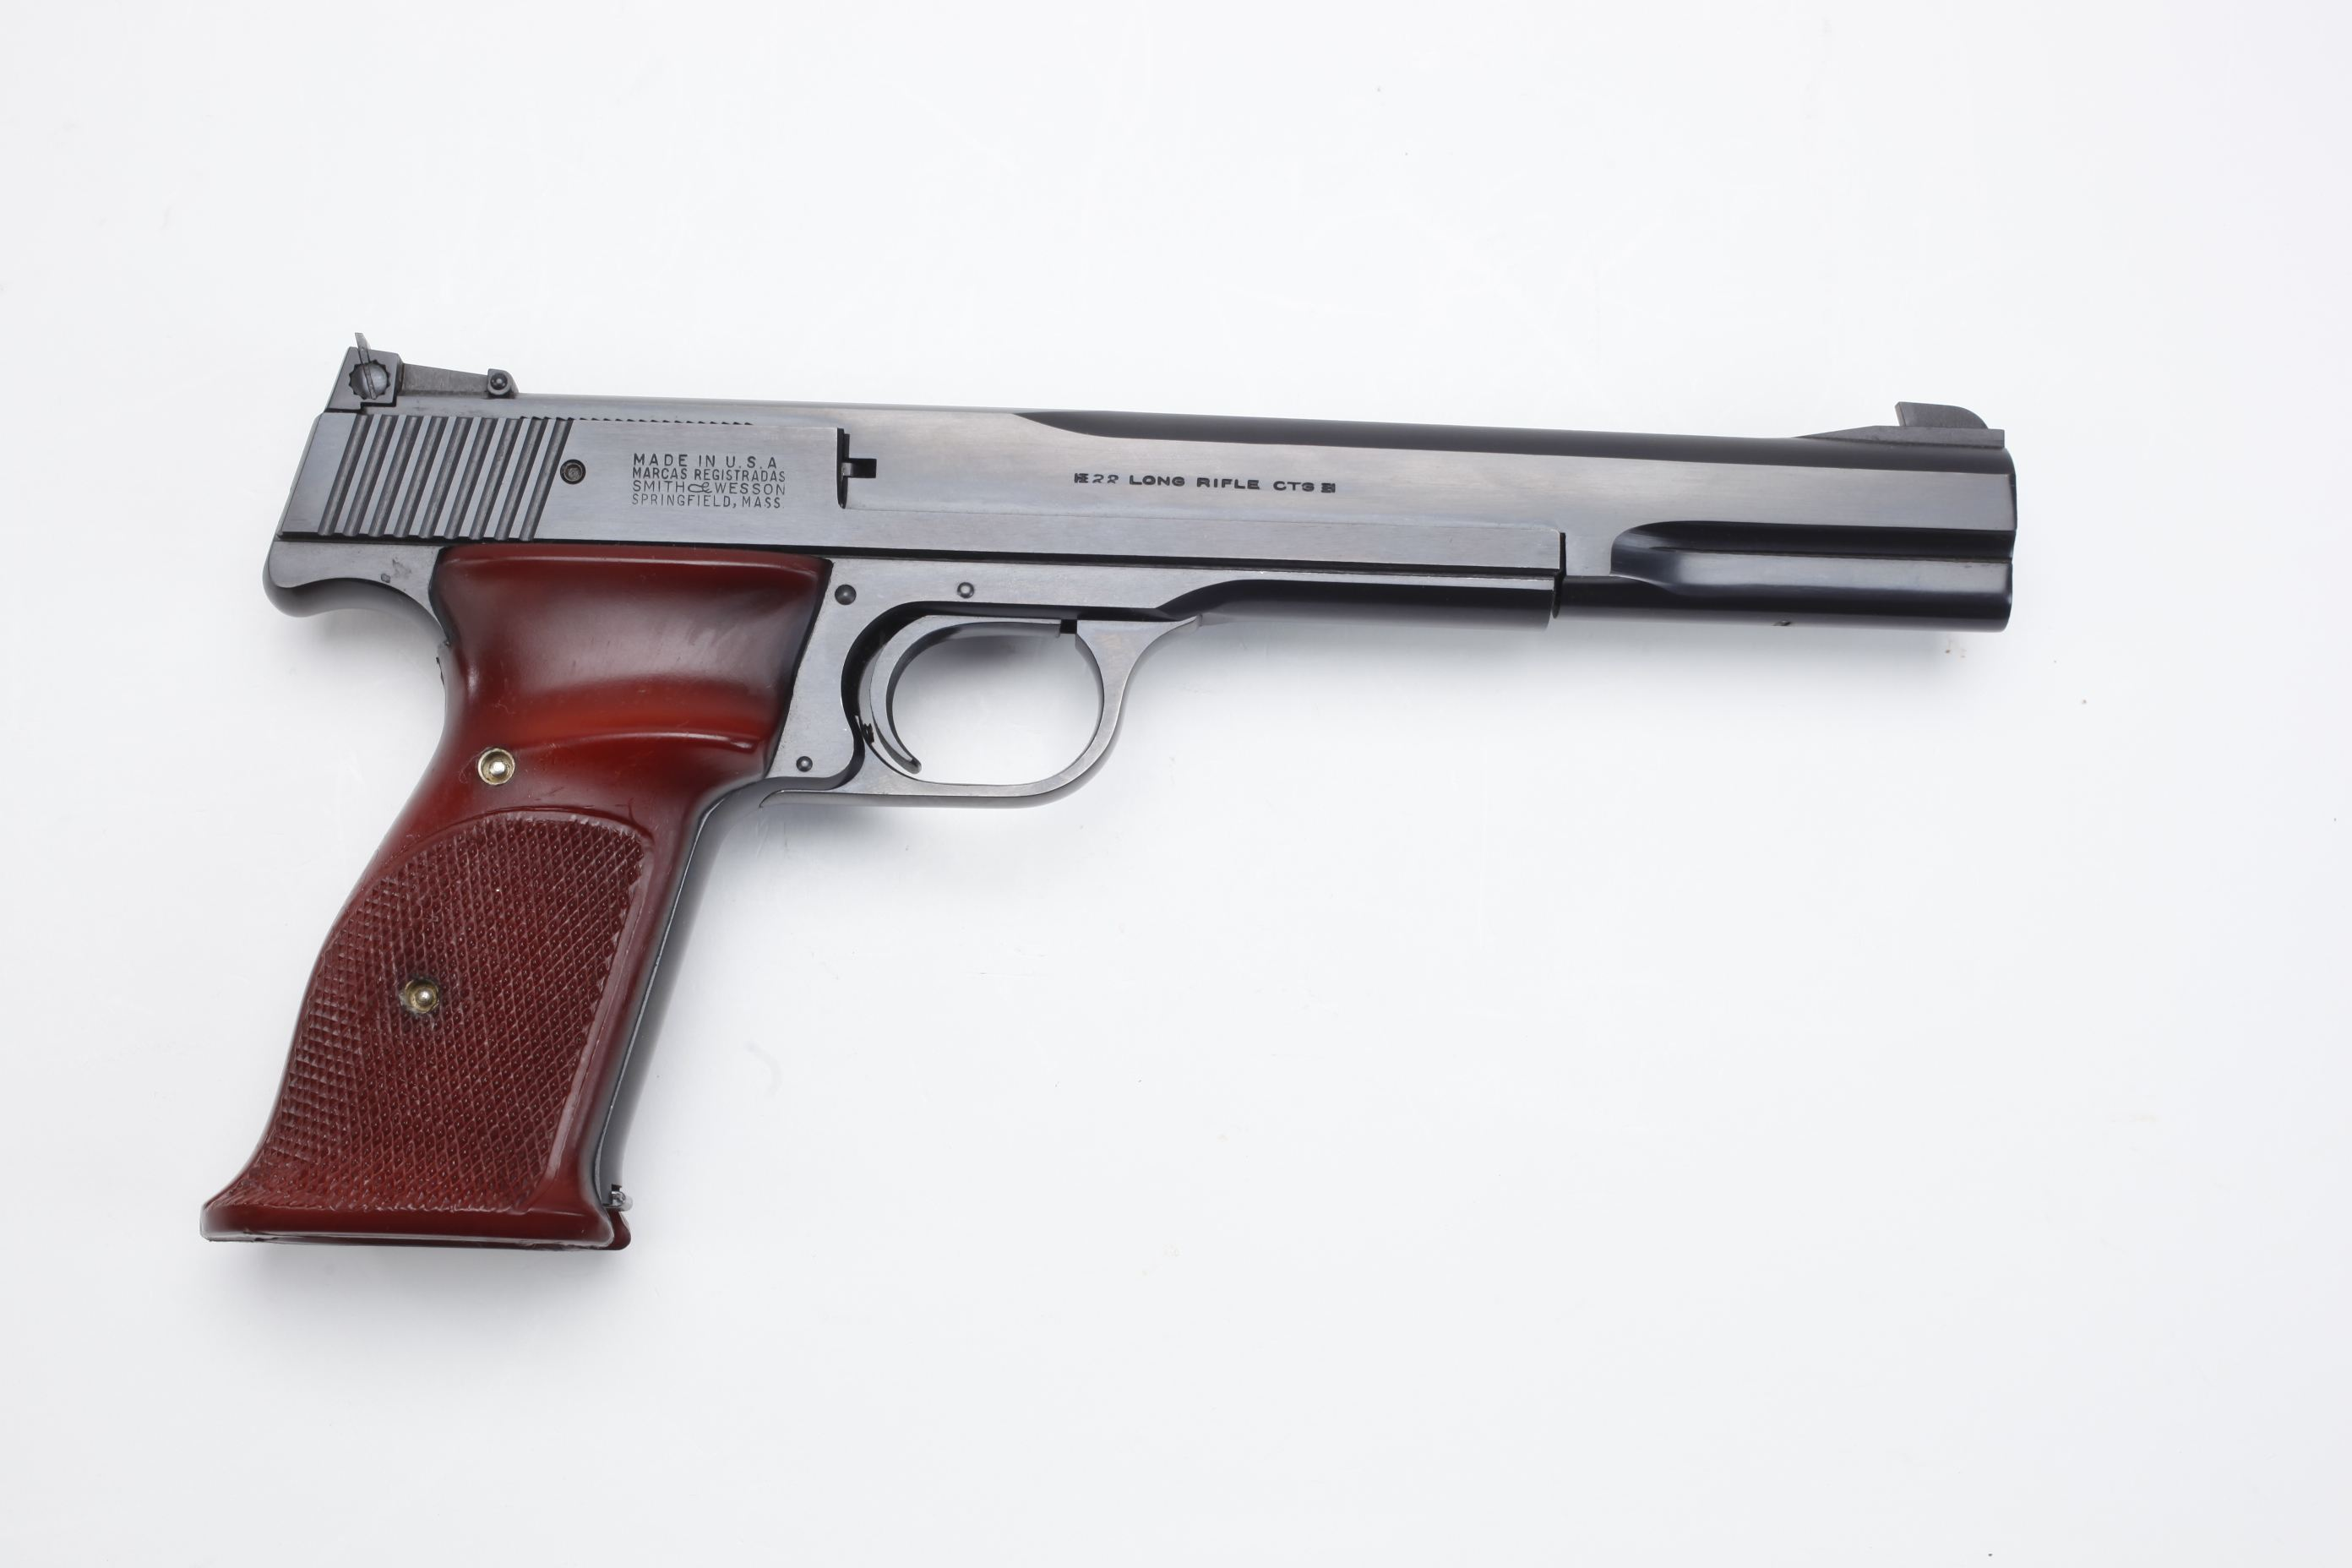 Smith & Wesson Model 46 Semi Automatic Pistol